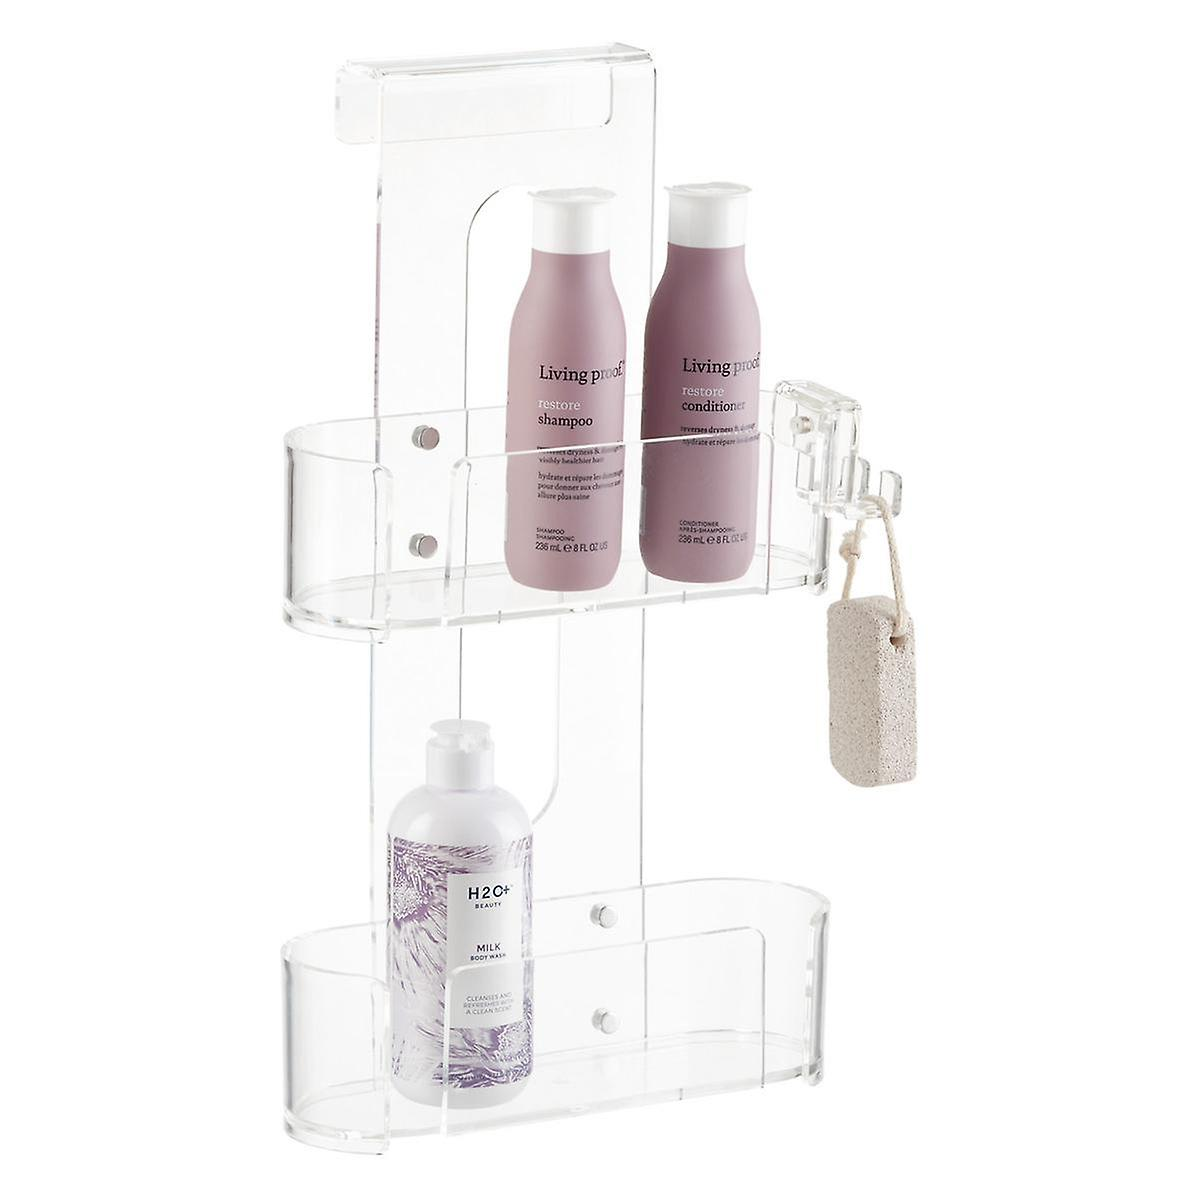 2-Tier Acrylic Shower Caddy | The Container Store